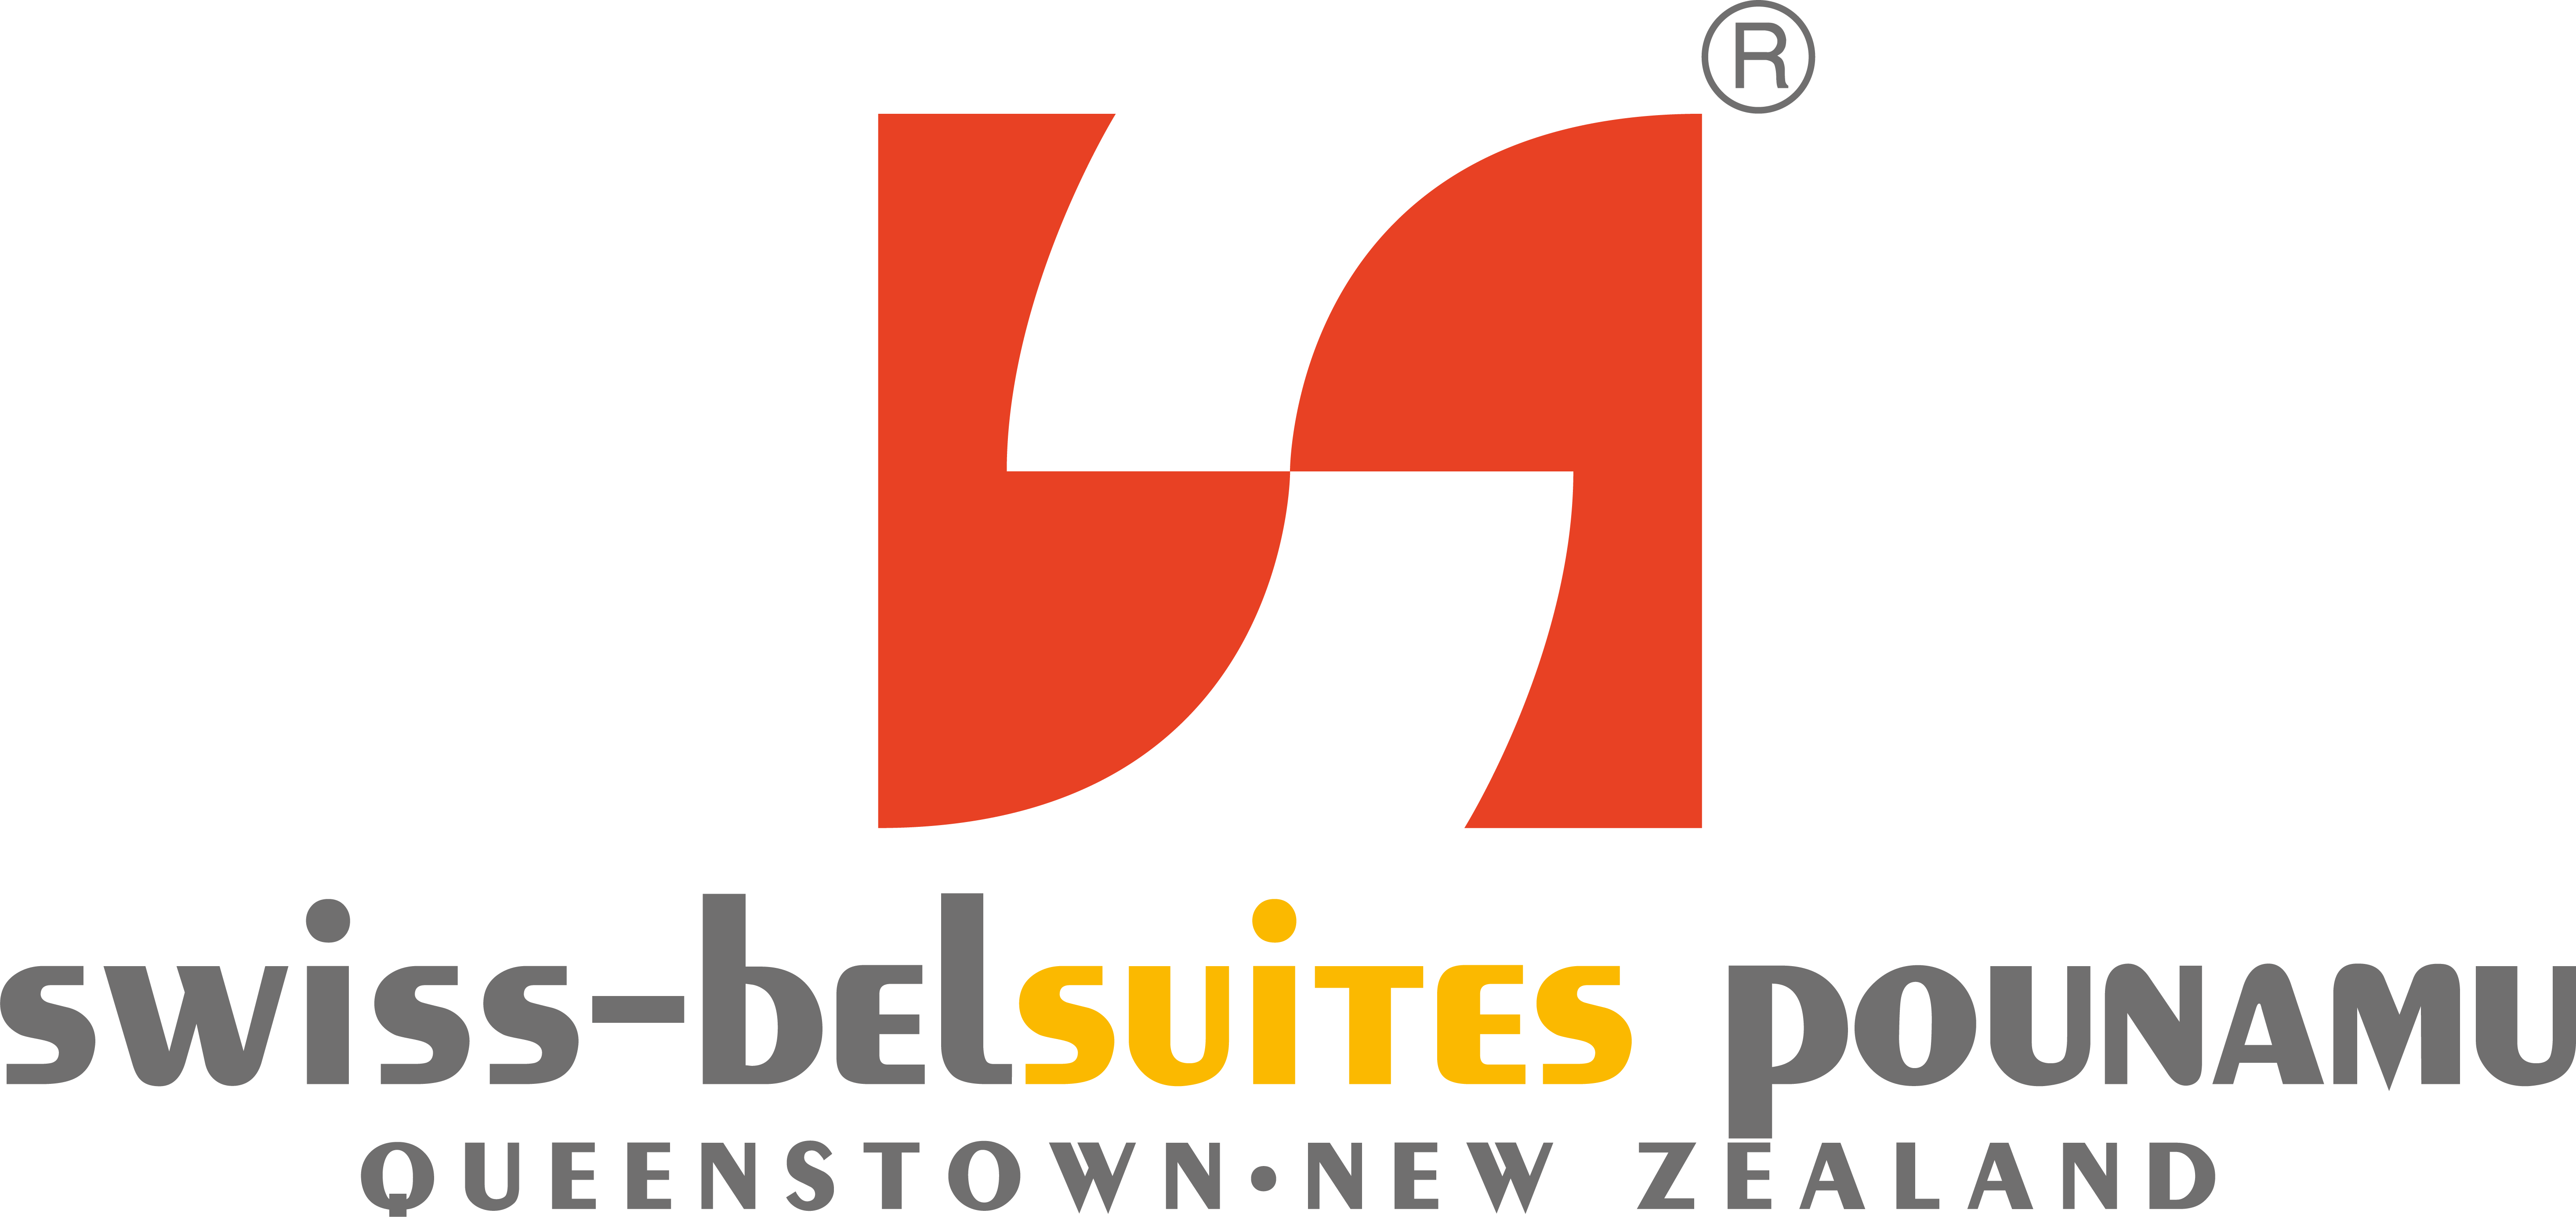 Swiss-Belsuites Pounamu Queenstown